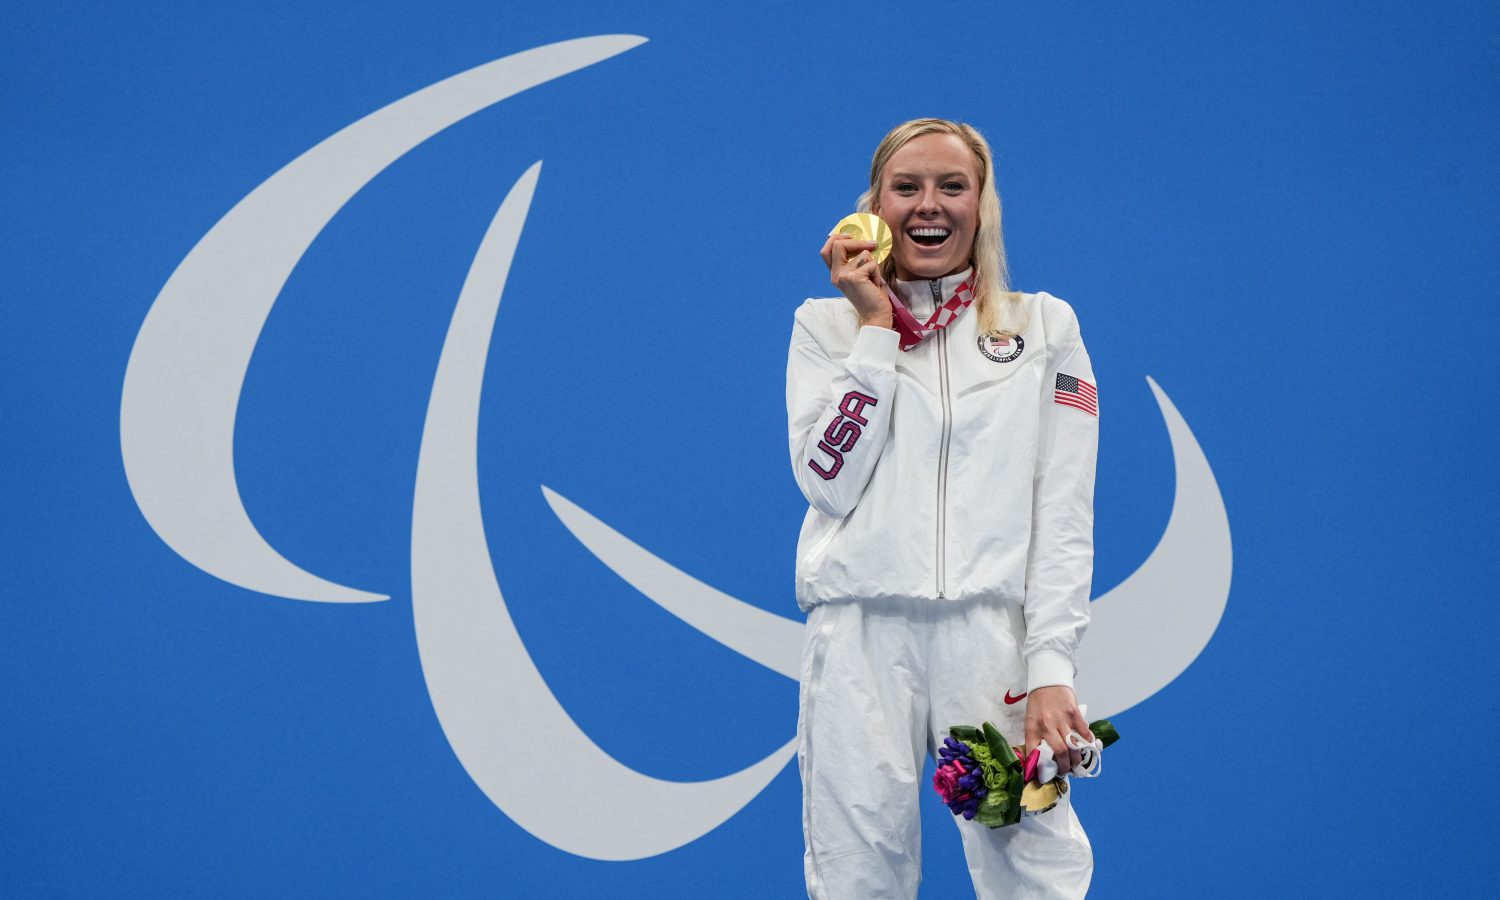 Team USA, Team Toyota's Jessica Long Wins 25th Paralympic Medal at Tokyo 2020